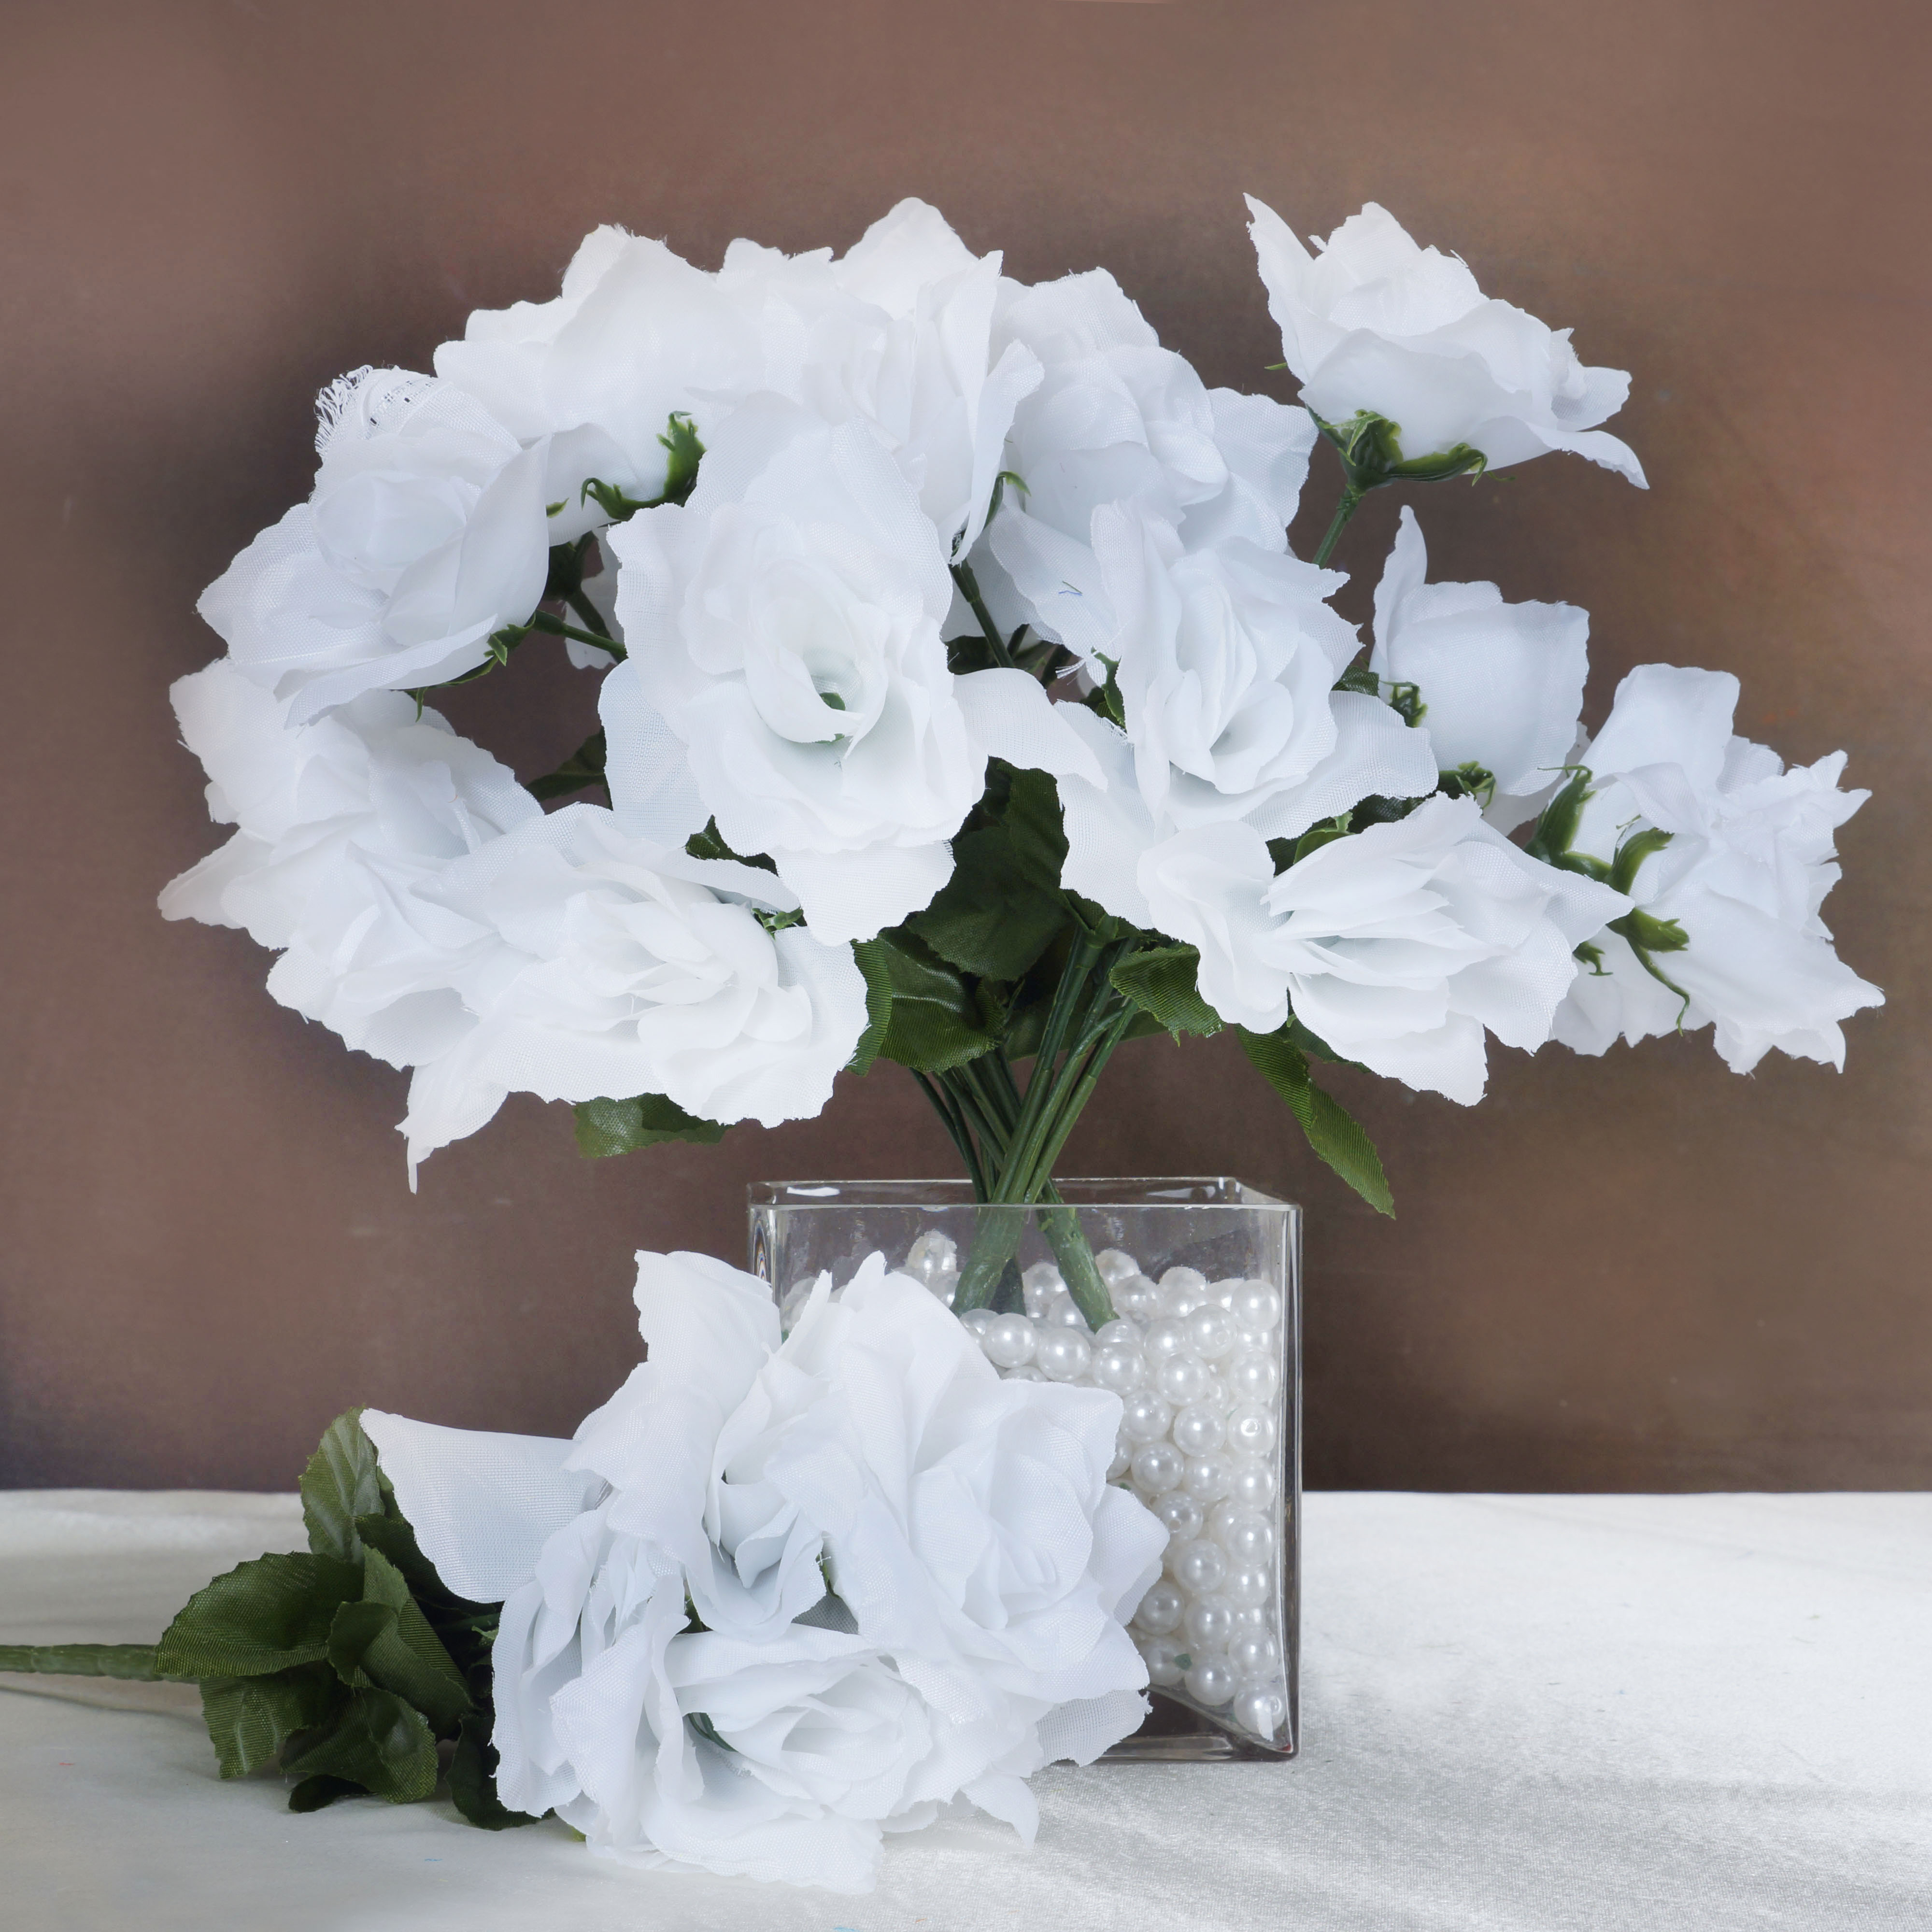 252 Open Roses Wedding Wholesale Discount Silk Flowers Bouquets For